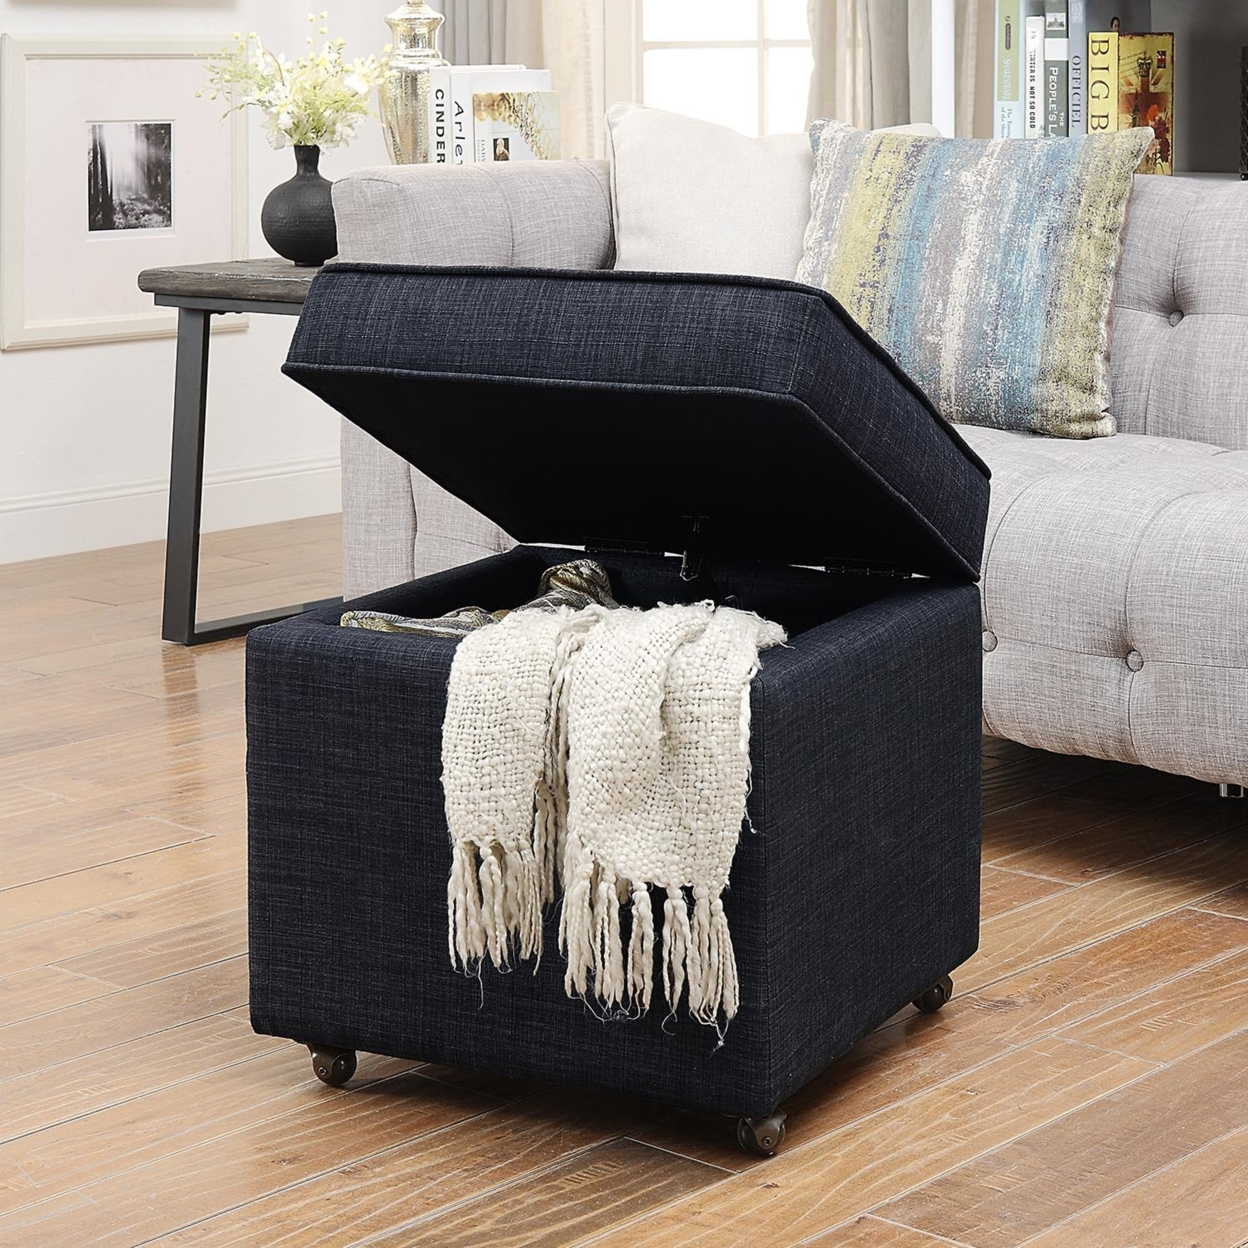 Astounding Martina Linen Or Velvet Hidden Storage Ottoman Castered Legs Ncnpc Chair Design For Home Ncnpcorg